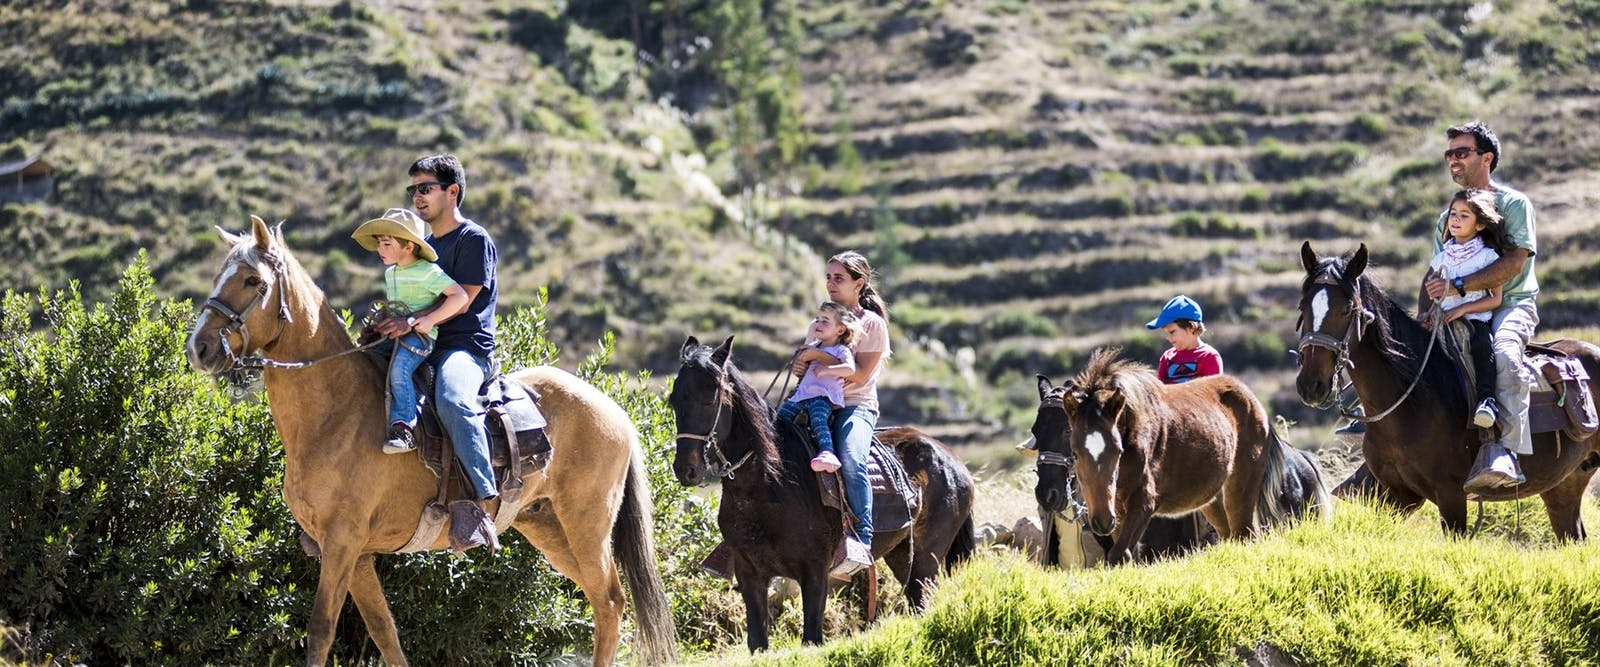 horse riding activity, Colca Lodge